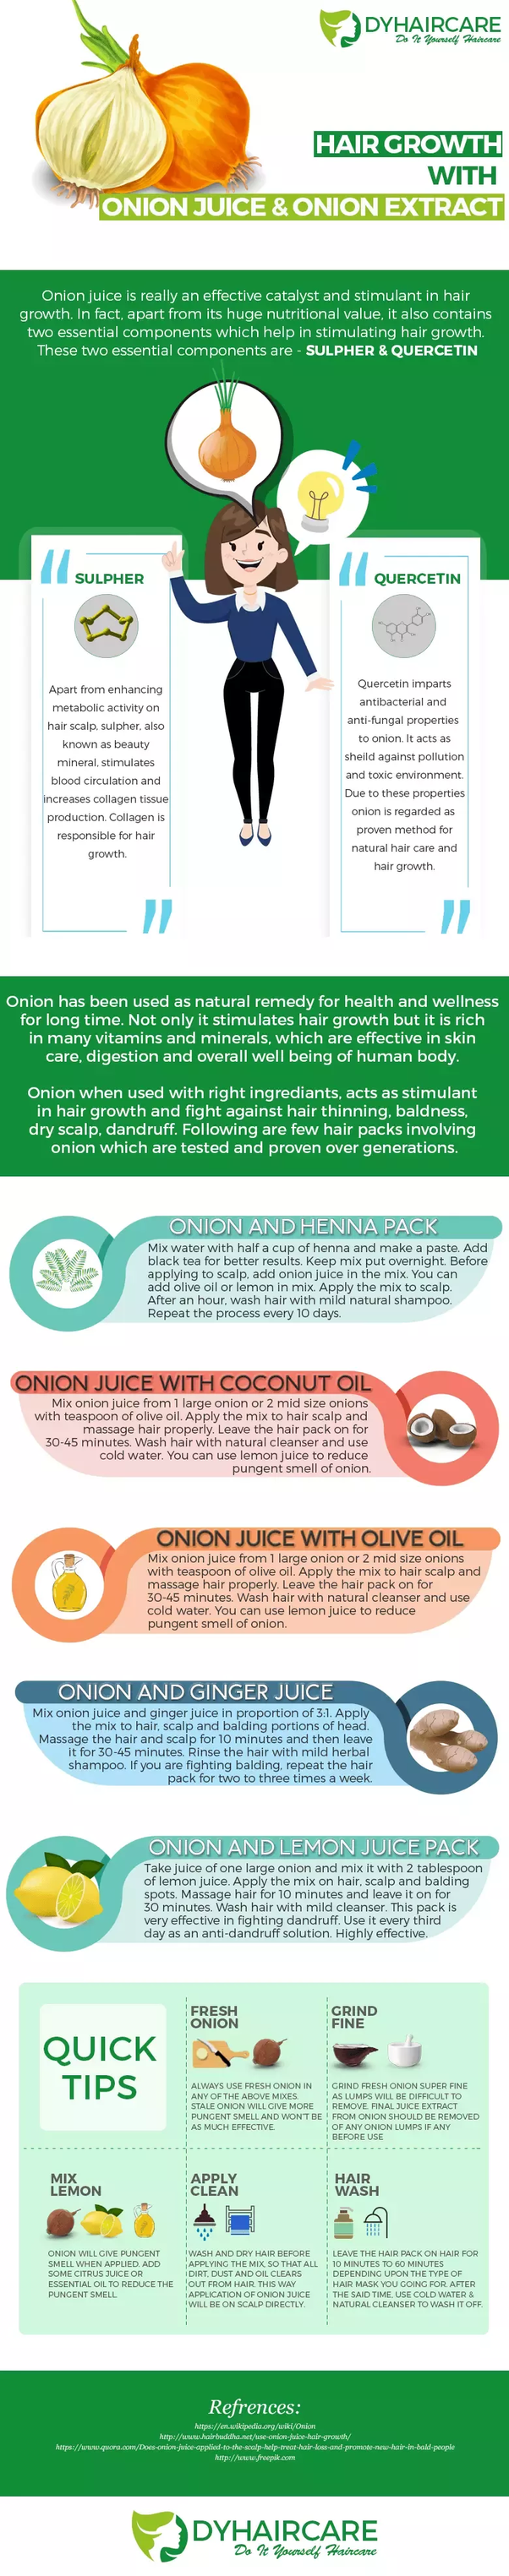 does onion and egg juice promote hair regrowth? - quora